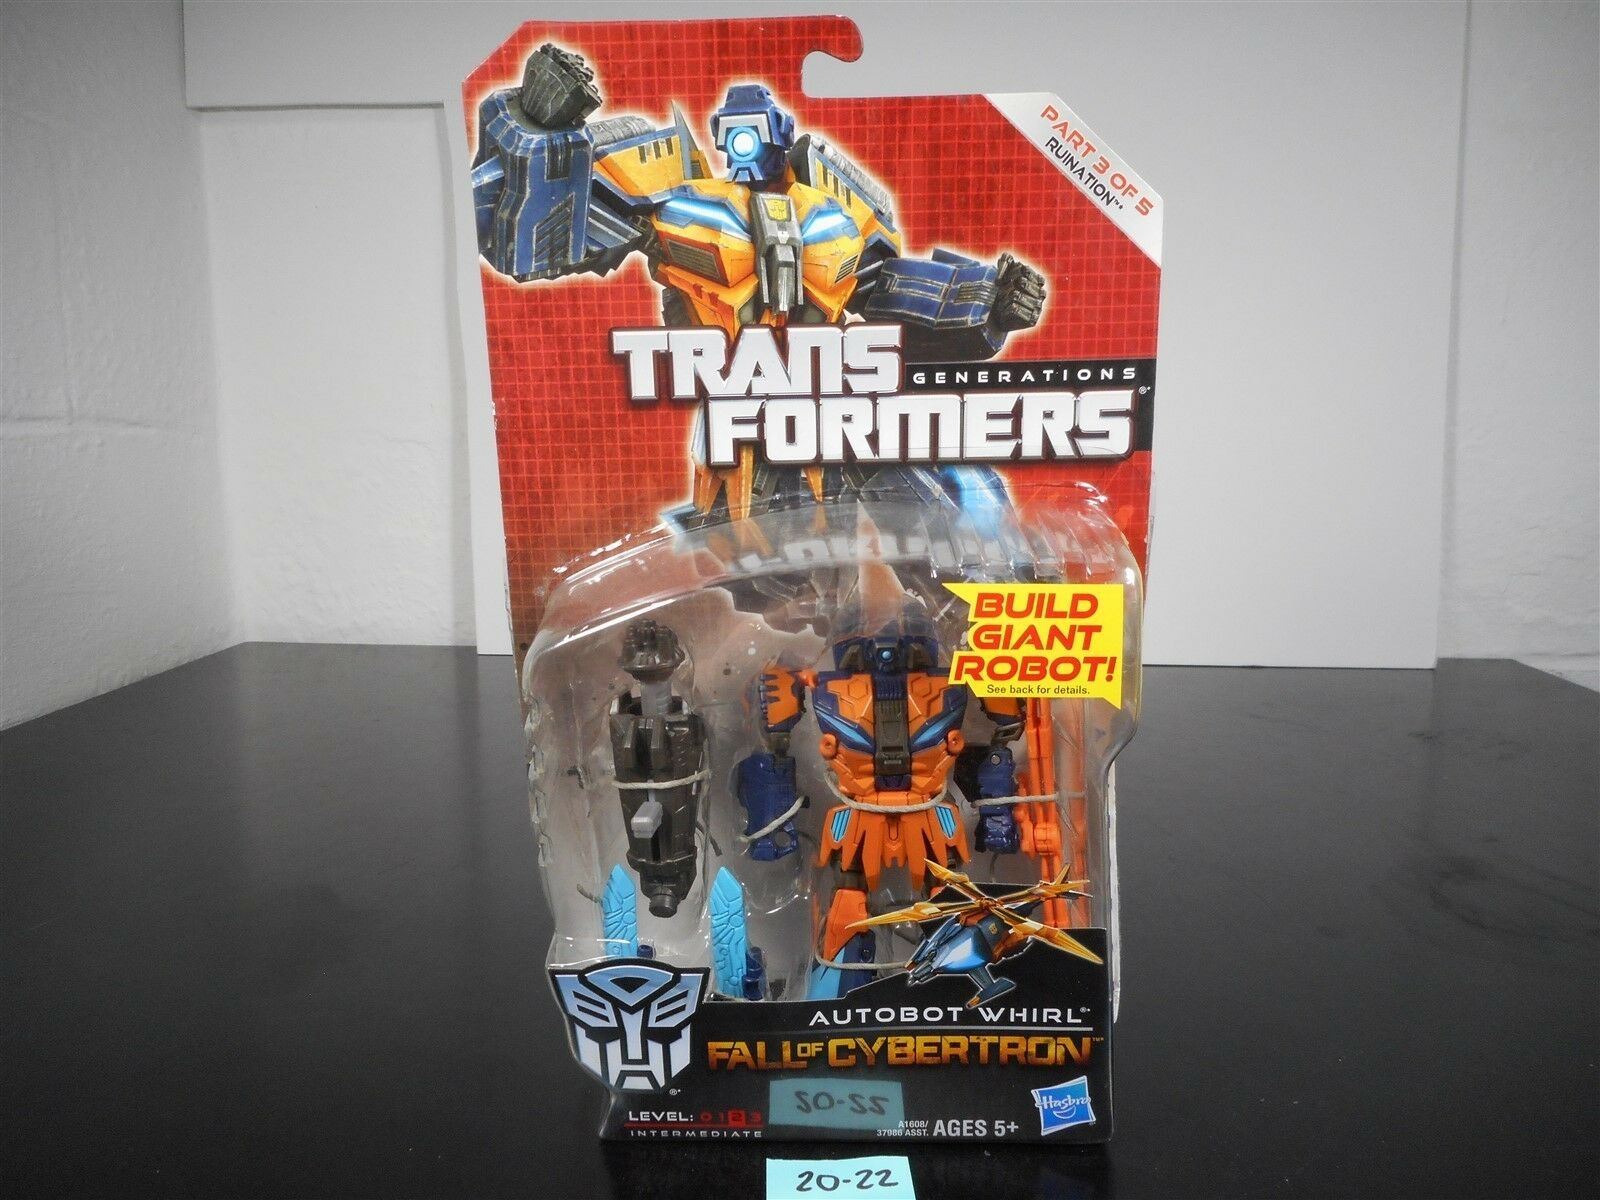 NEW & SEALED  TRANSFORMERS GENERATIONS FOC AUTOBOT WHIRL RUINATION 3 OF 5 20-22